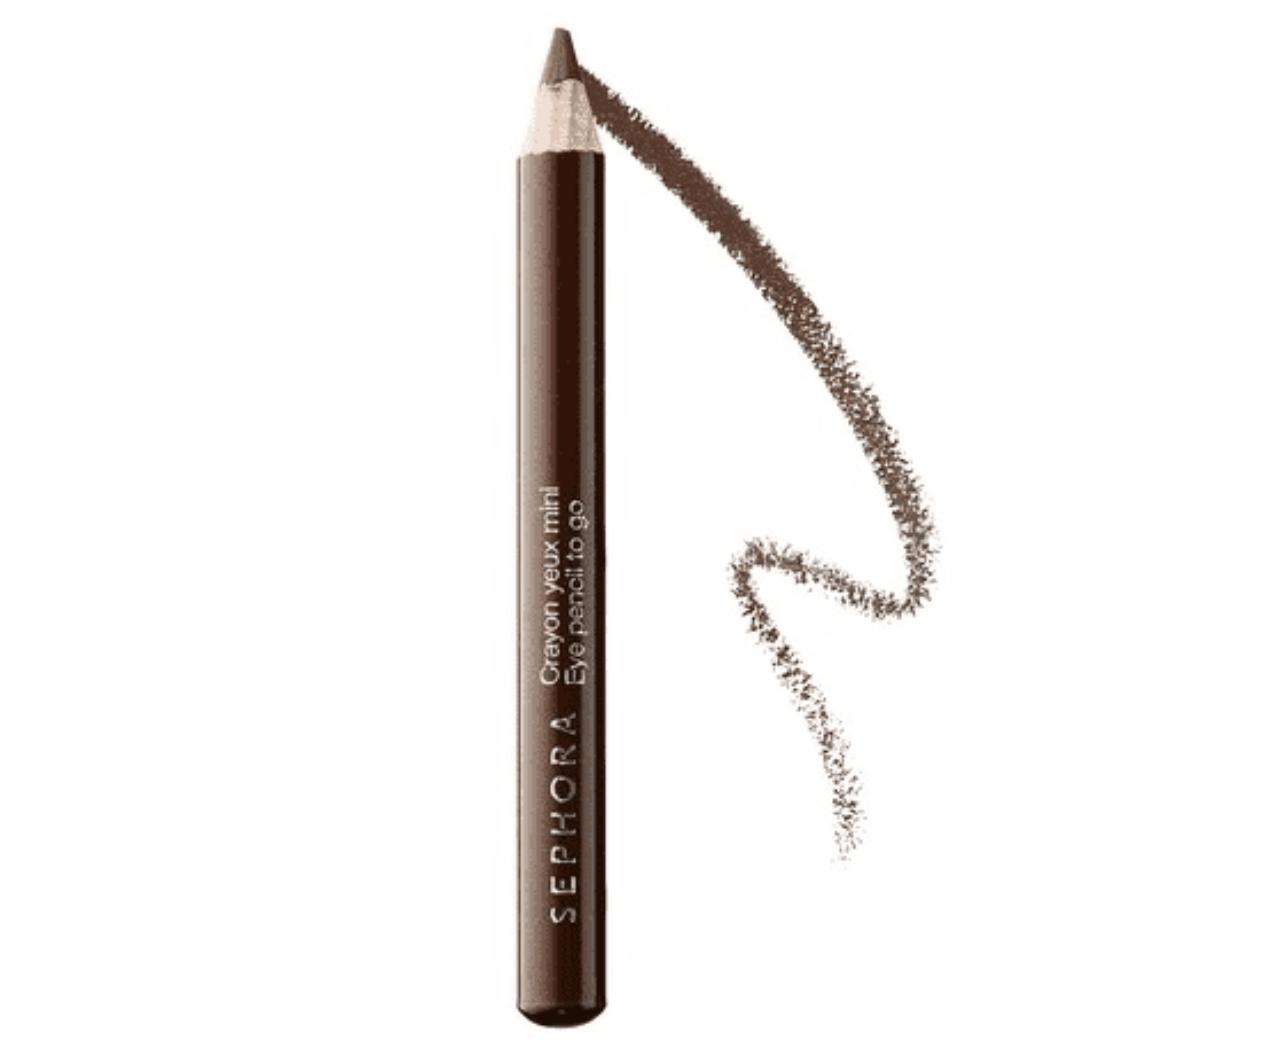 Sephora Eye Pencil To Go Chocolate Brown 02